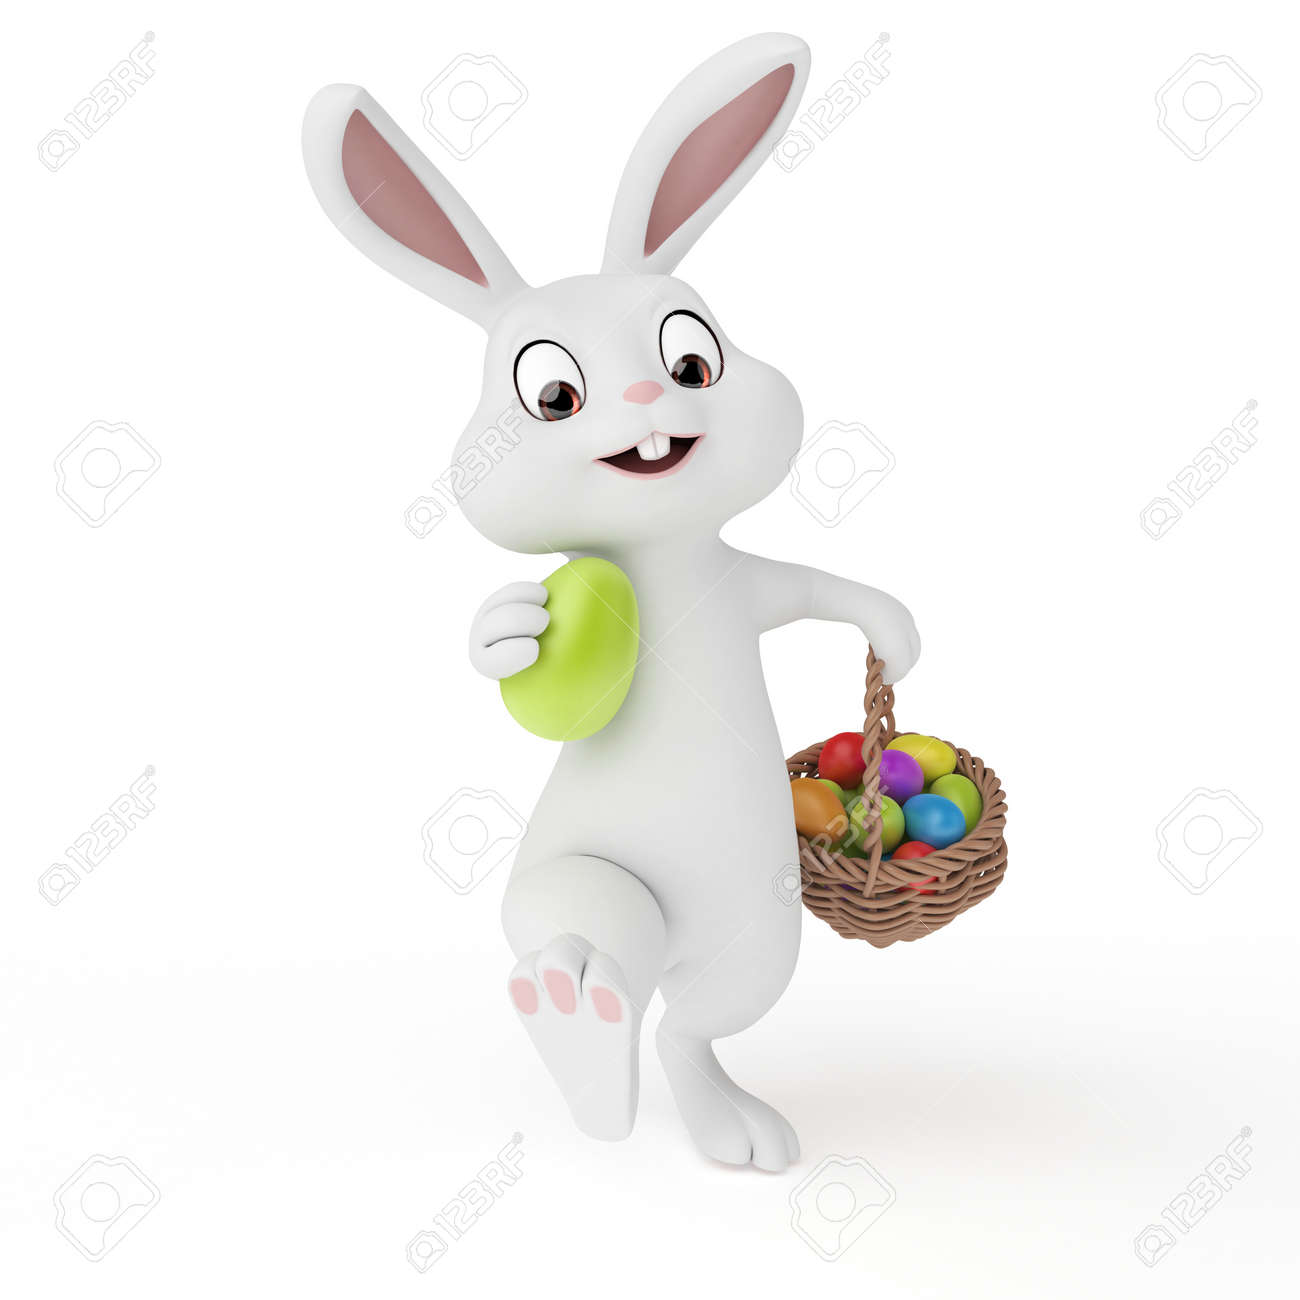 3d rendered illustration of a cute easter bunny stock photo